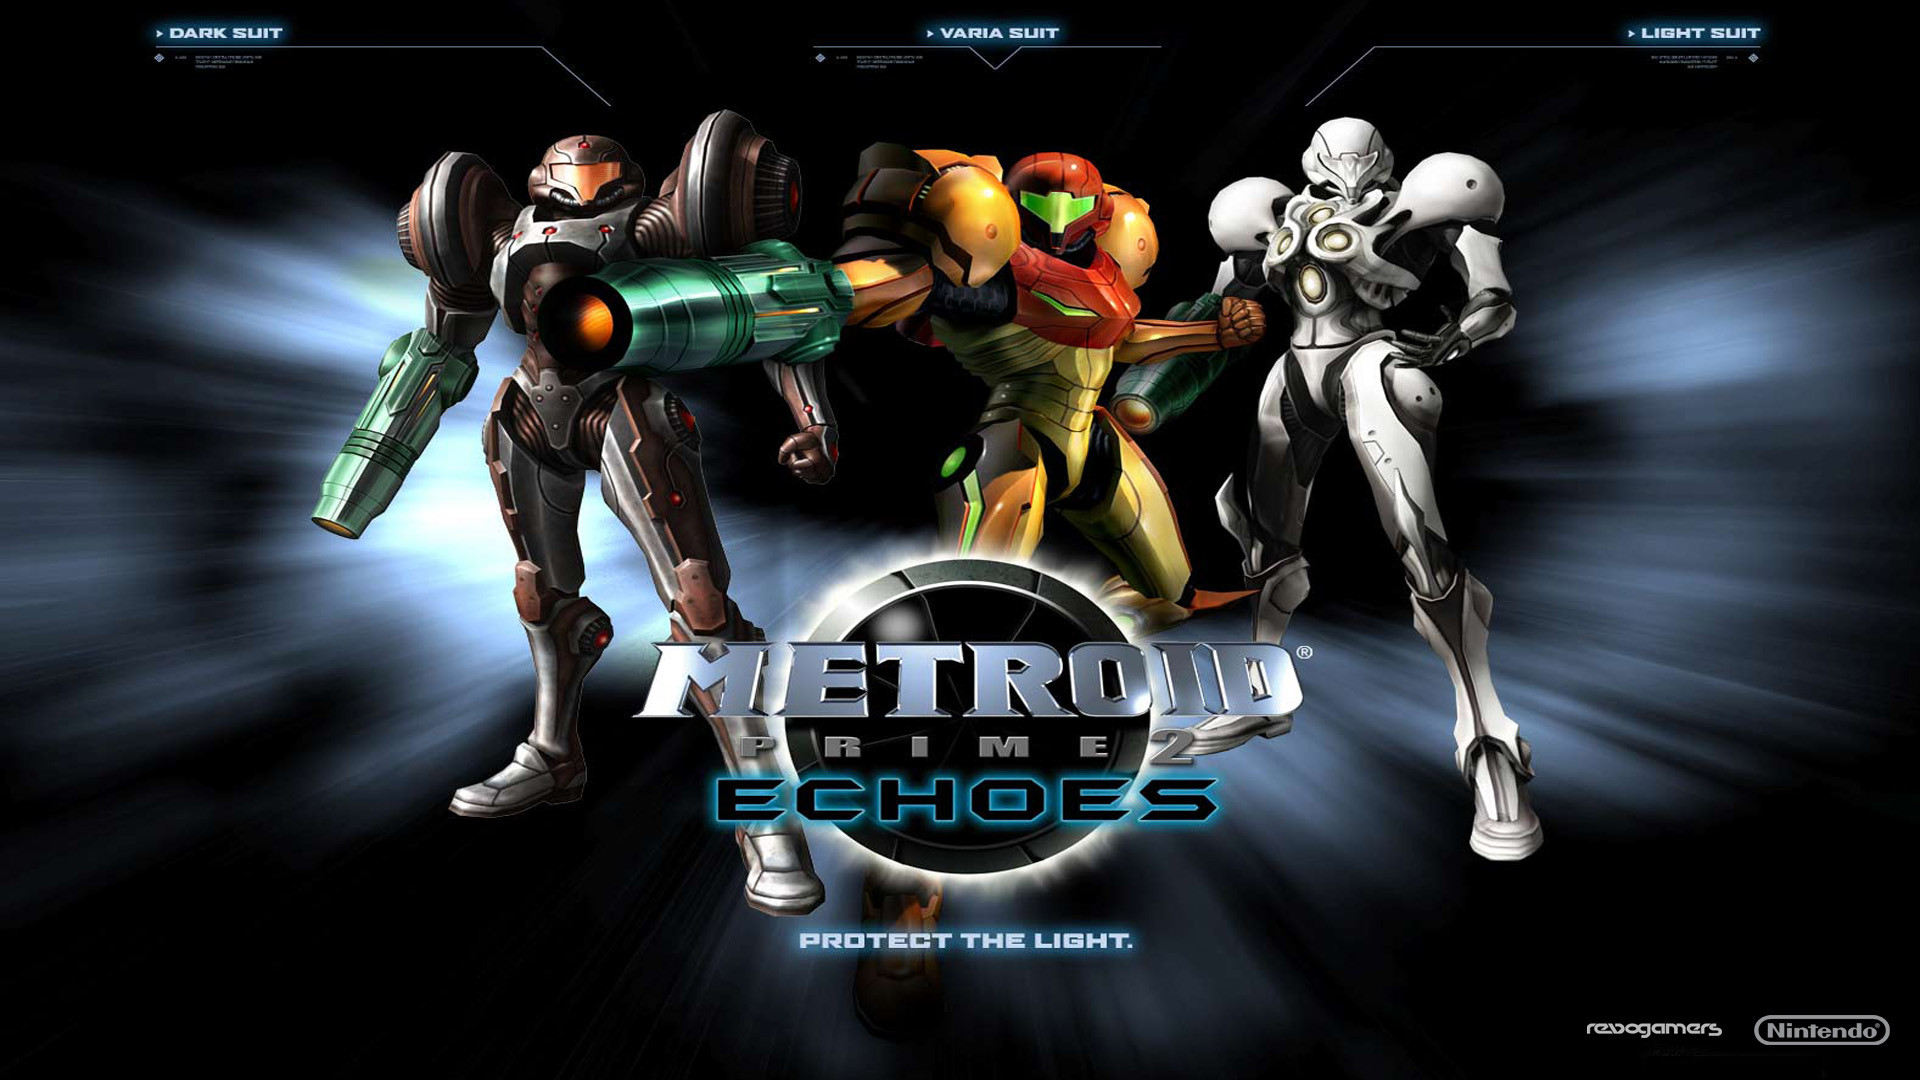 1920x1080 2 Metroid Prime 2: Echoes HD Wallpapers | Backgrounds - Wallpaper Abyss